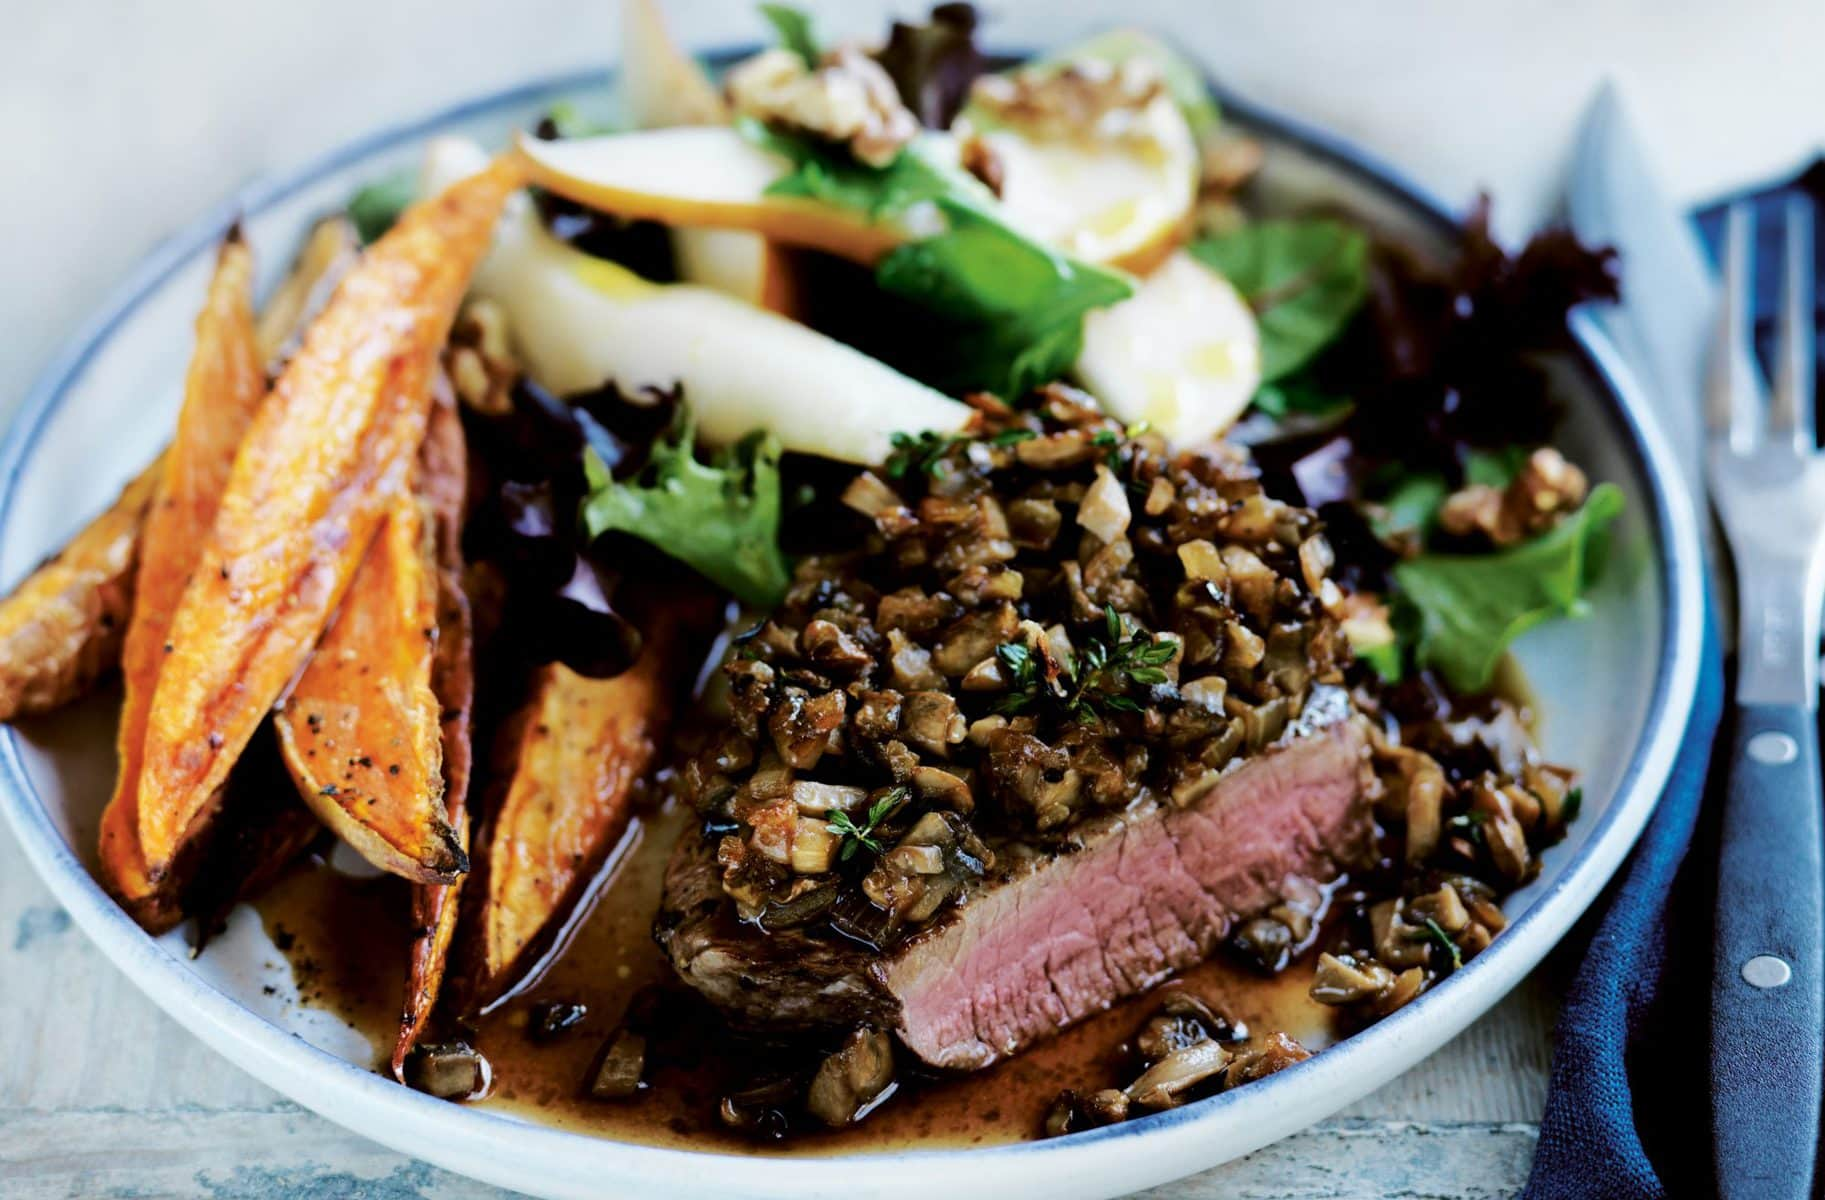 Mushroom and thyme-crusted beef with pear salad